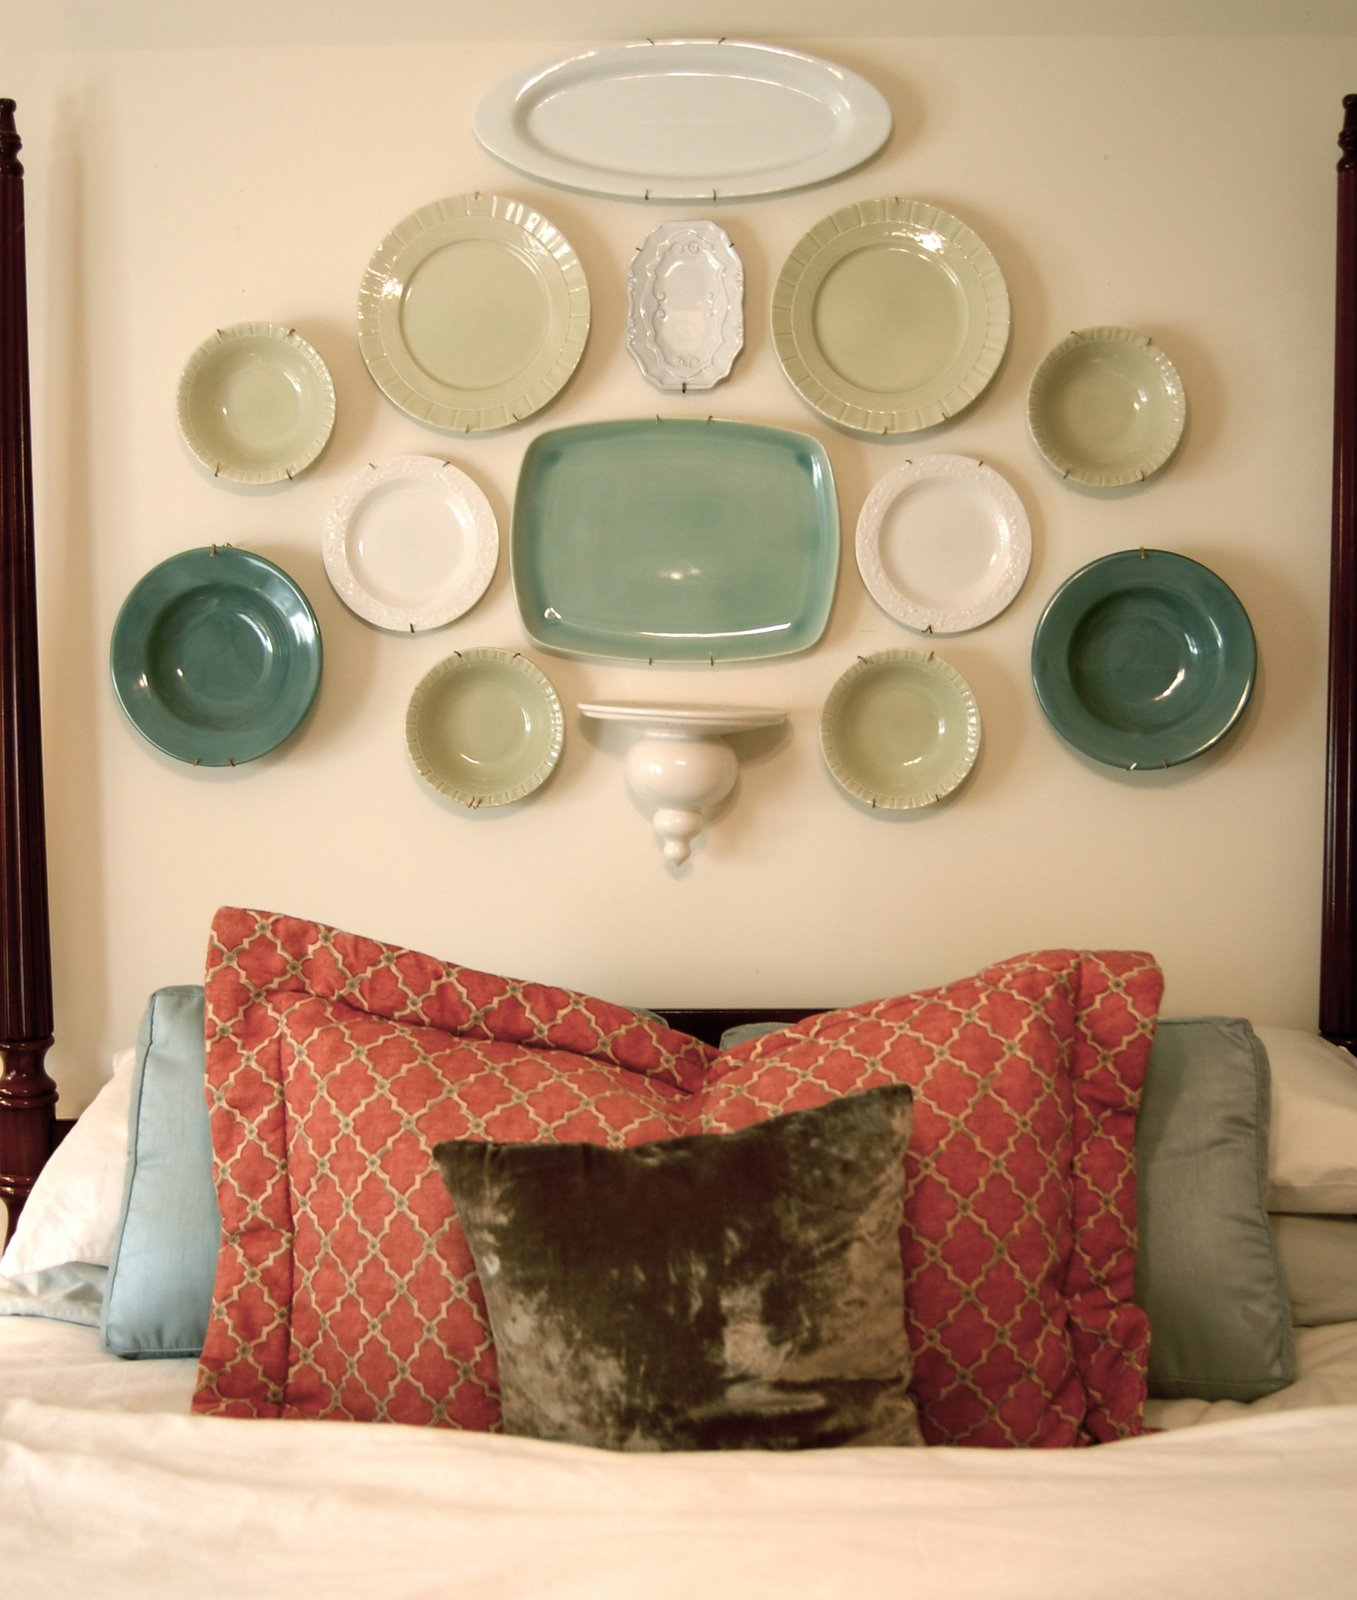 Hang plates above the bed like headboard